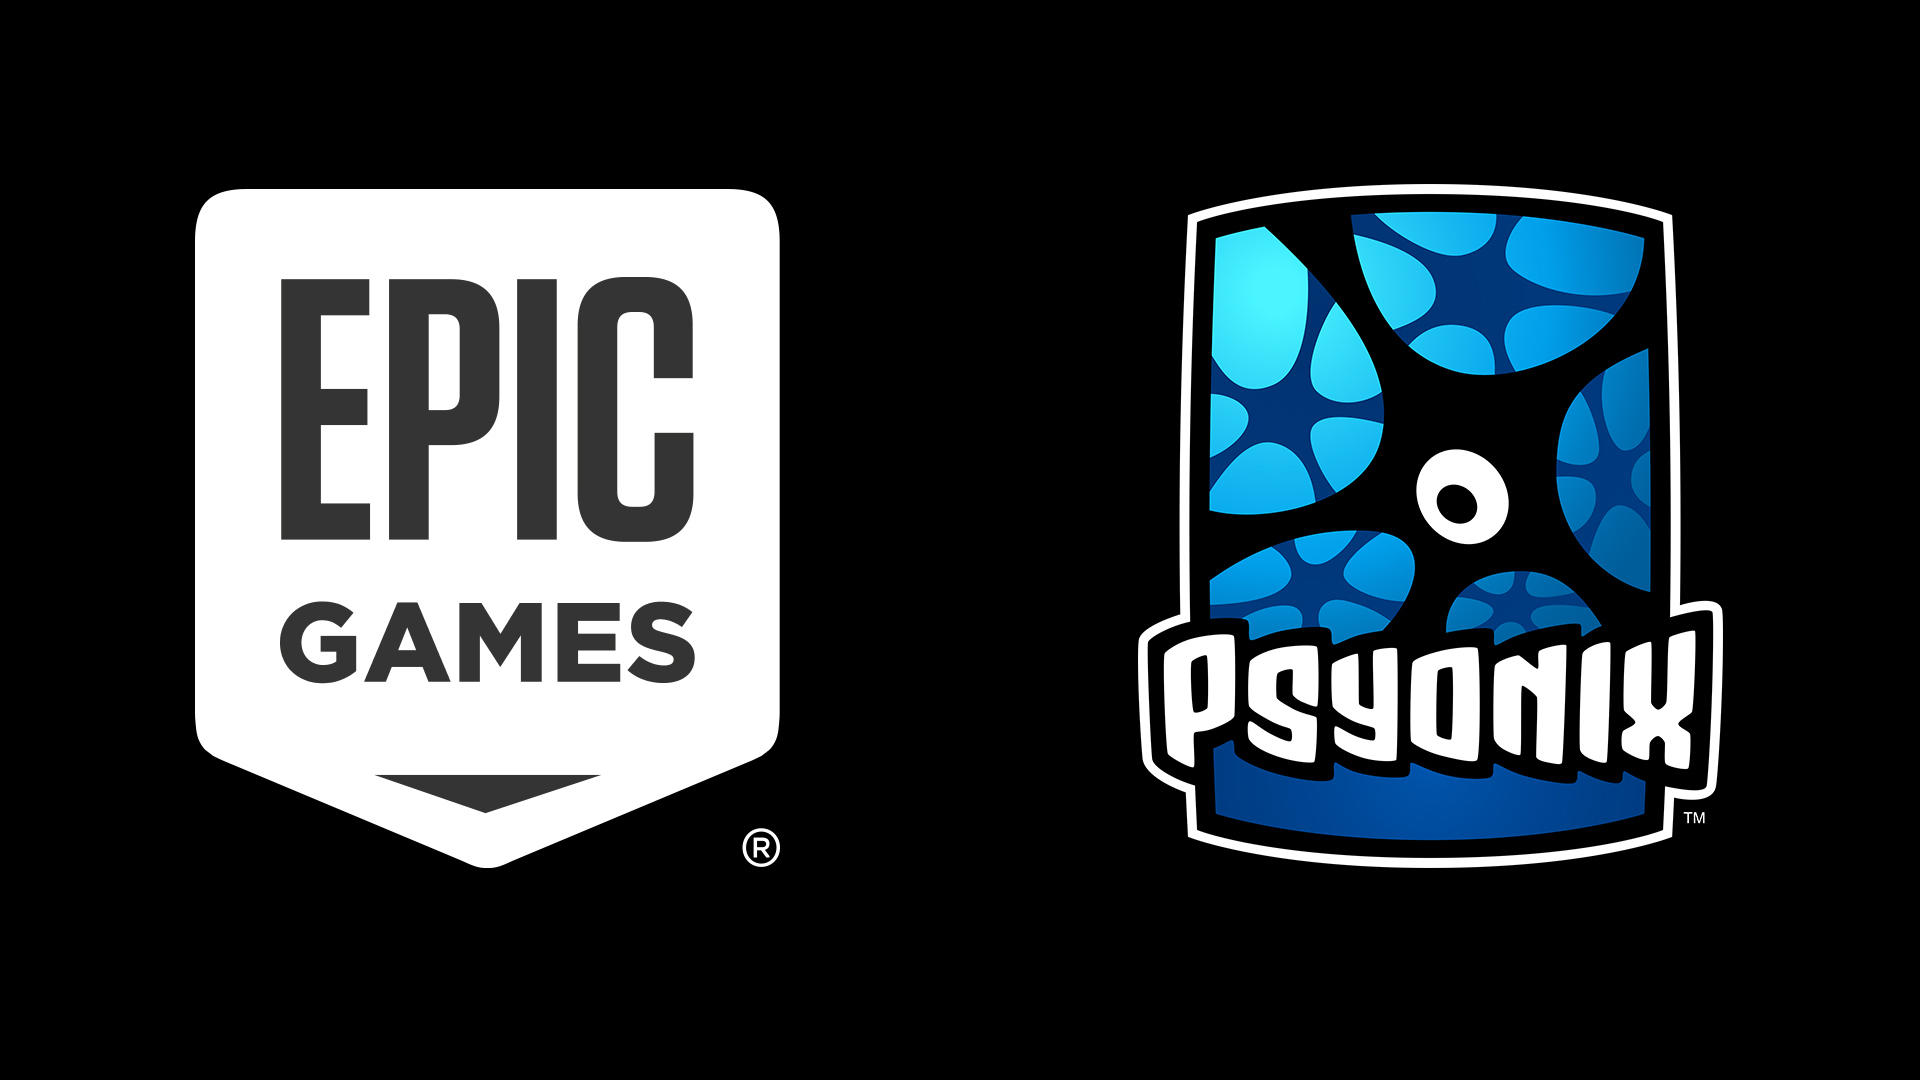 Epic Games Acquires Psyonix